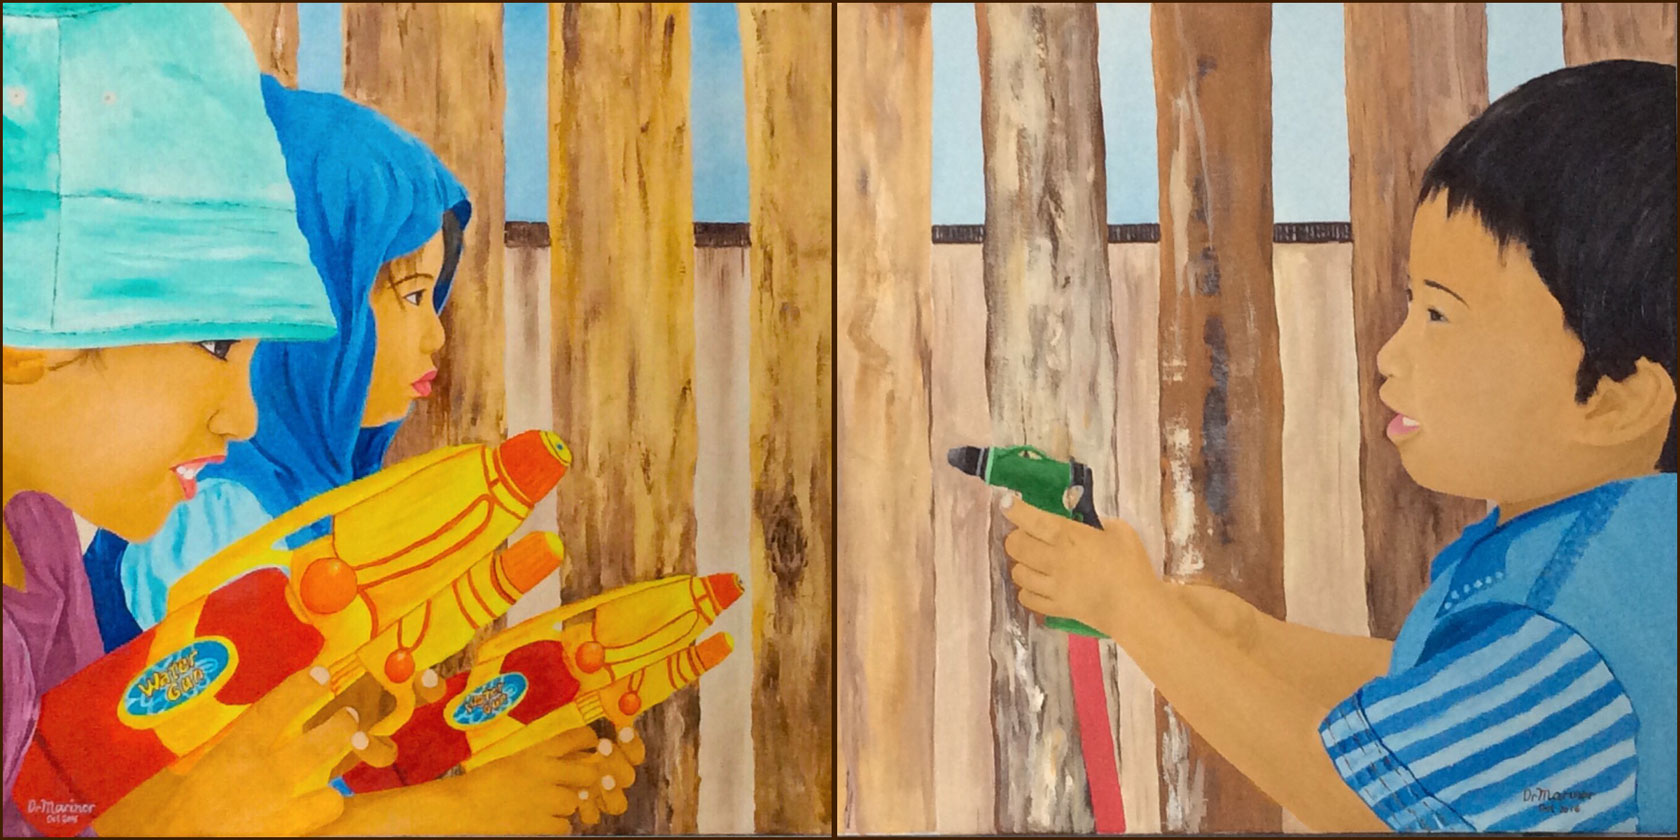 Dr Marinor Blanco - Waterguns (18x26) versus Waterhose (18x26) Both oil on canvas